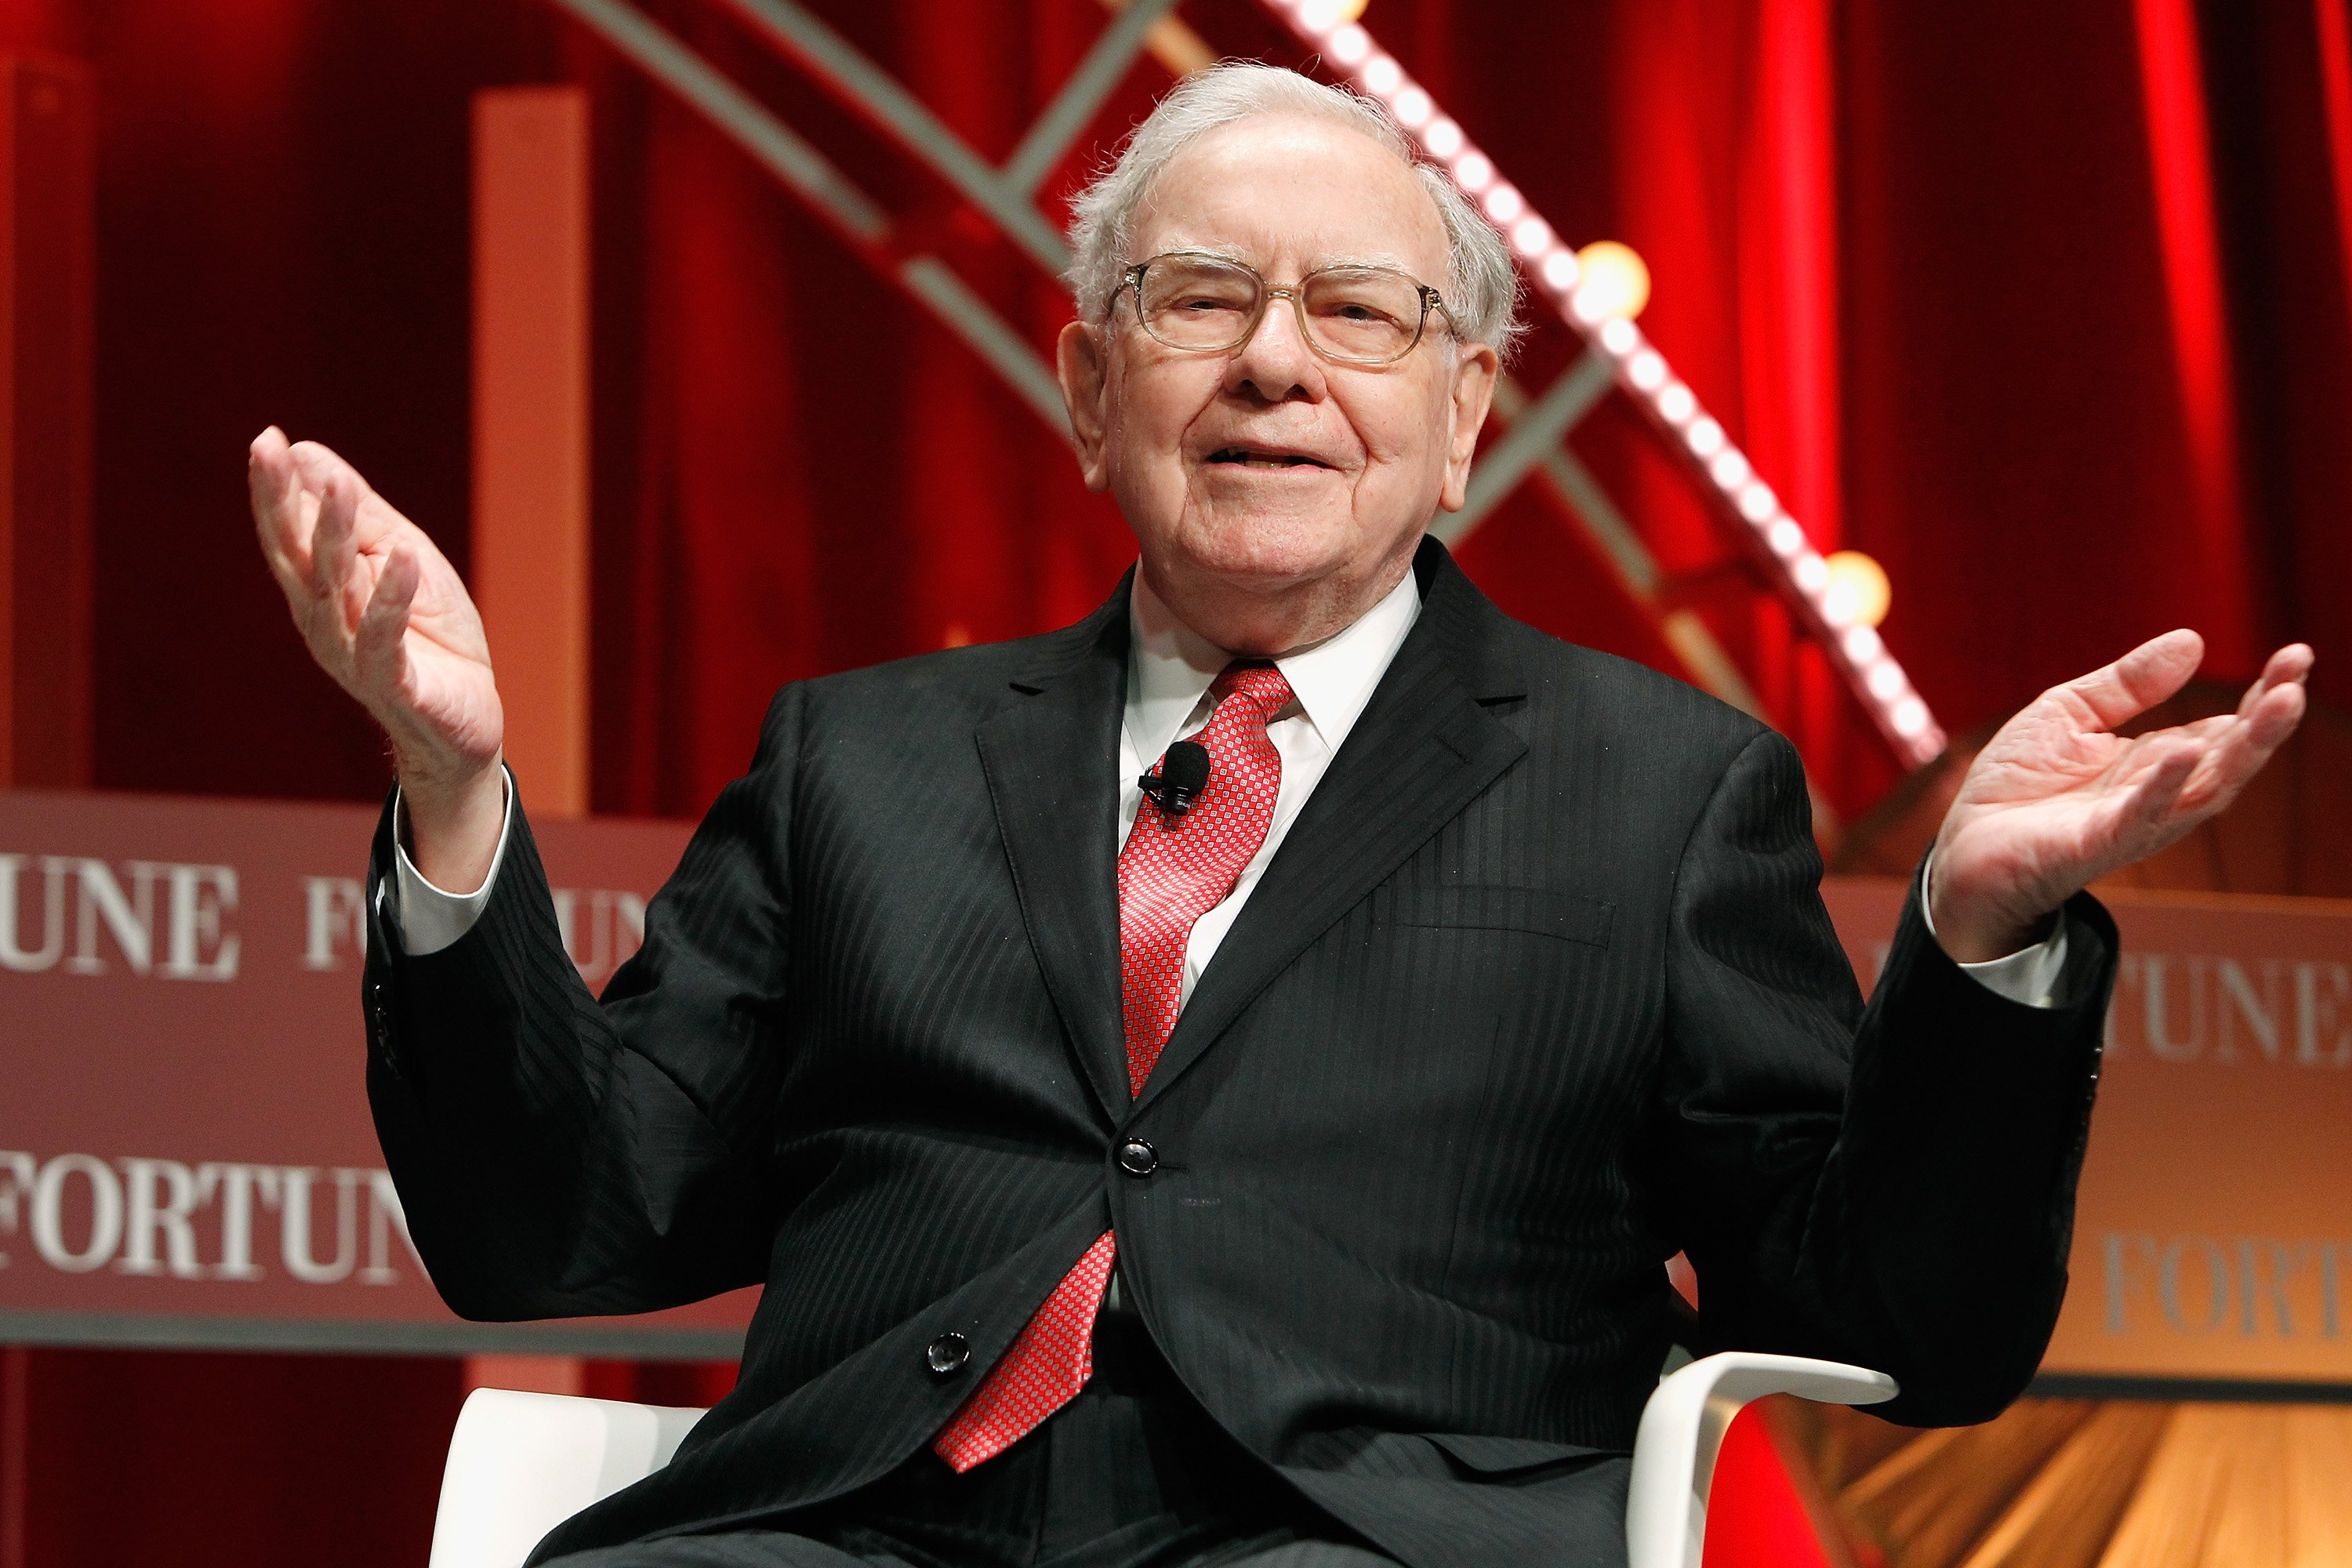 Warren Buffett March Madness odds